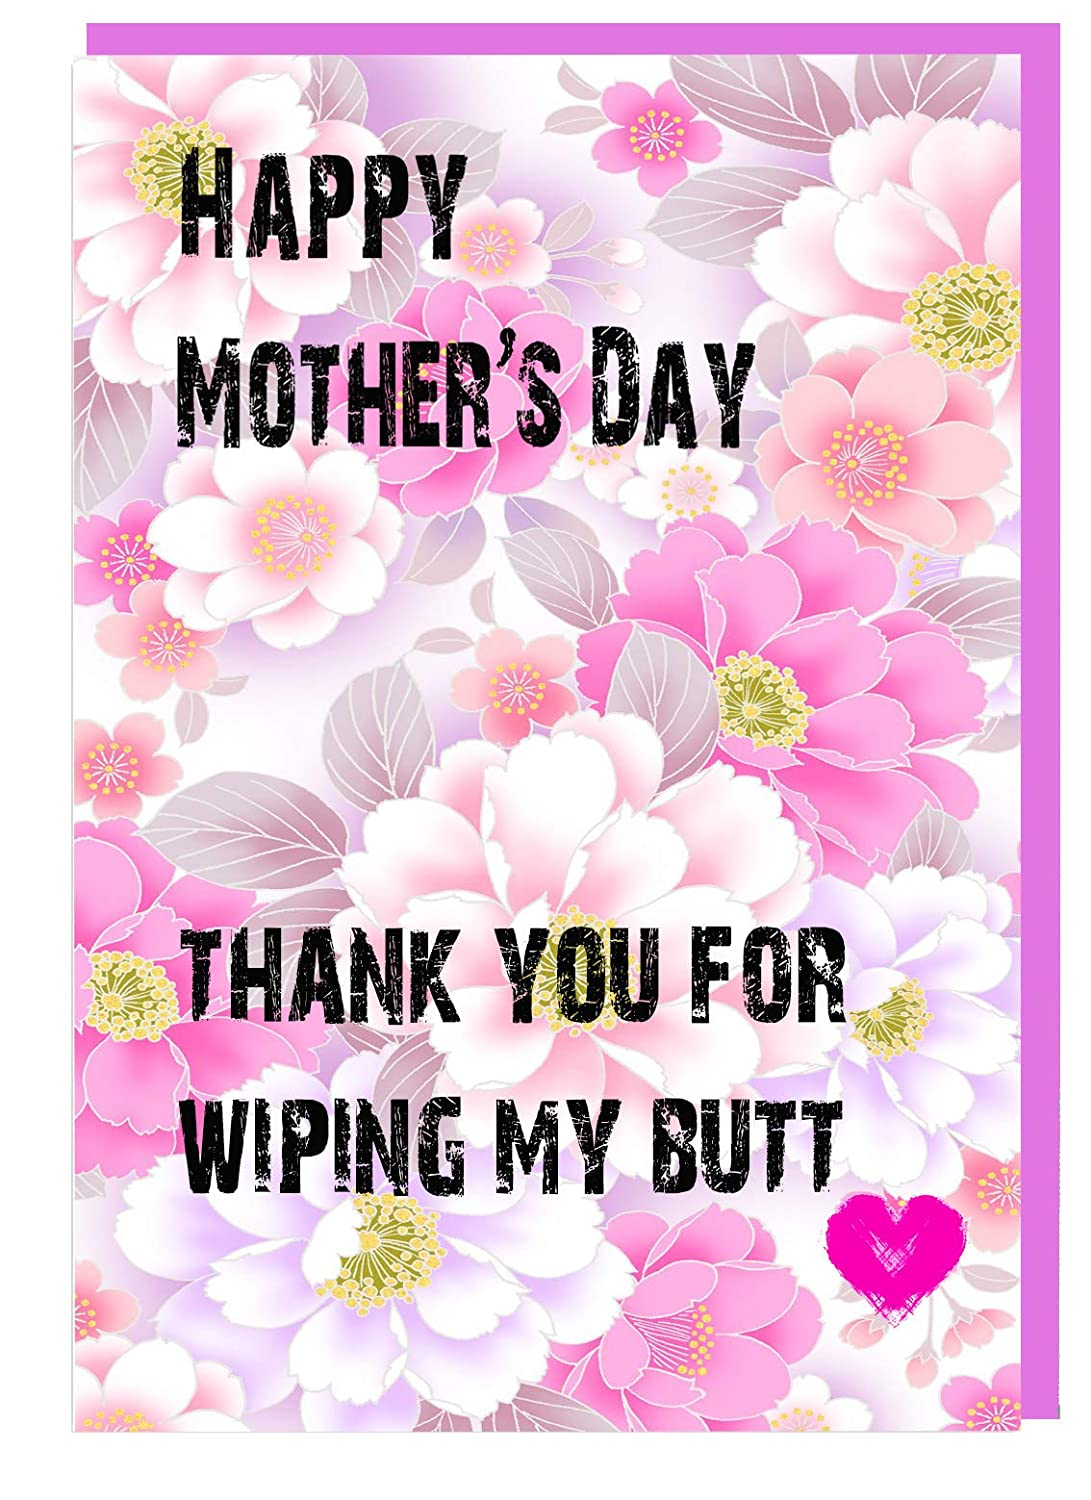 Remarkable Funny Cheeky Joke Mothers Day Card For Mum Thank You For Wiping Birthday Cards Printable Opercafe Filternl